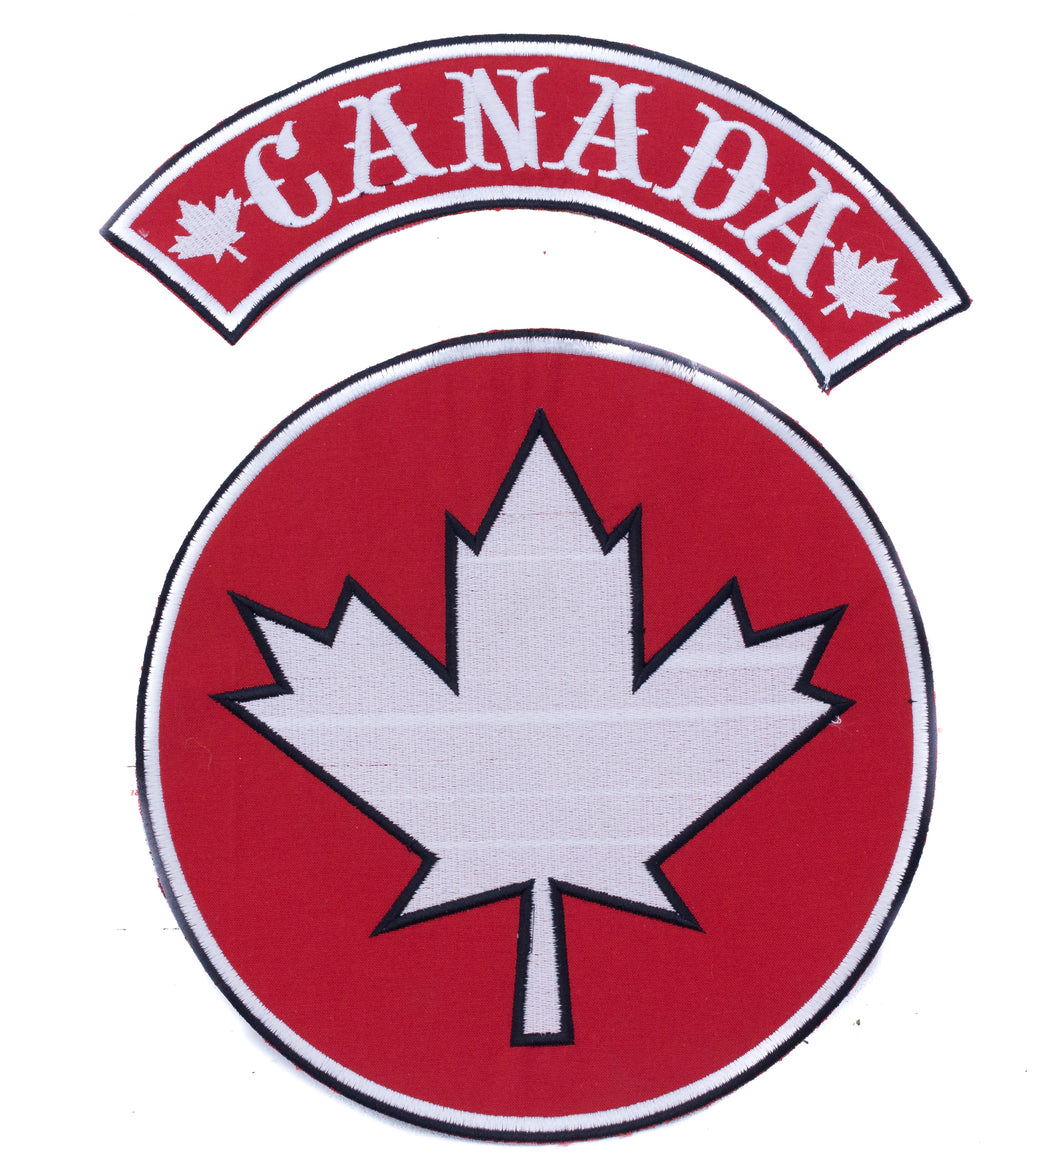 CANADA Flag Red and White Center and Top Rocker Iron on Patch for Biker Vest-STURGIS MIDWEST INC.